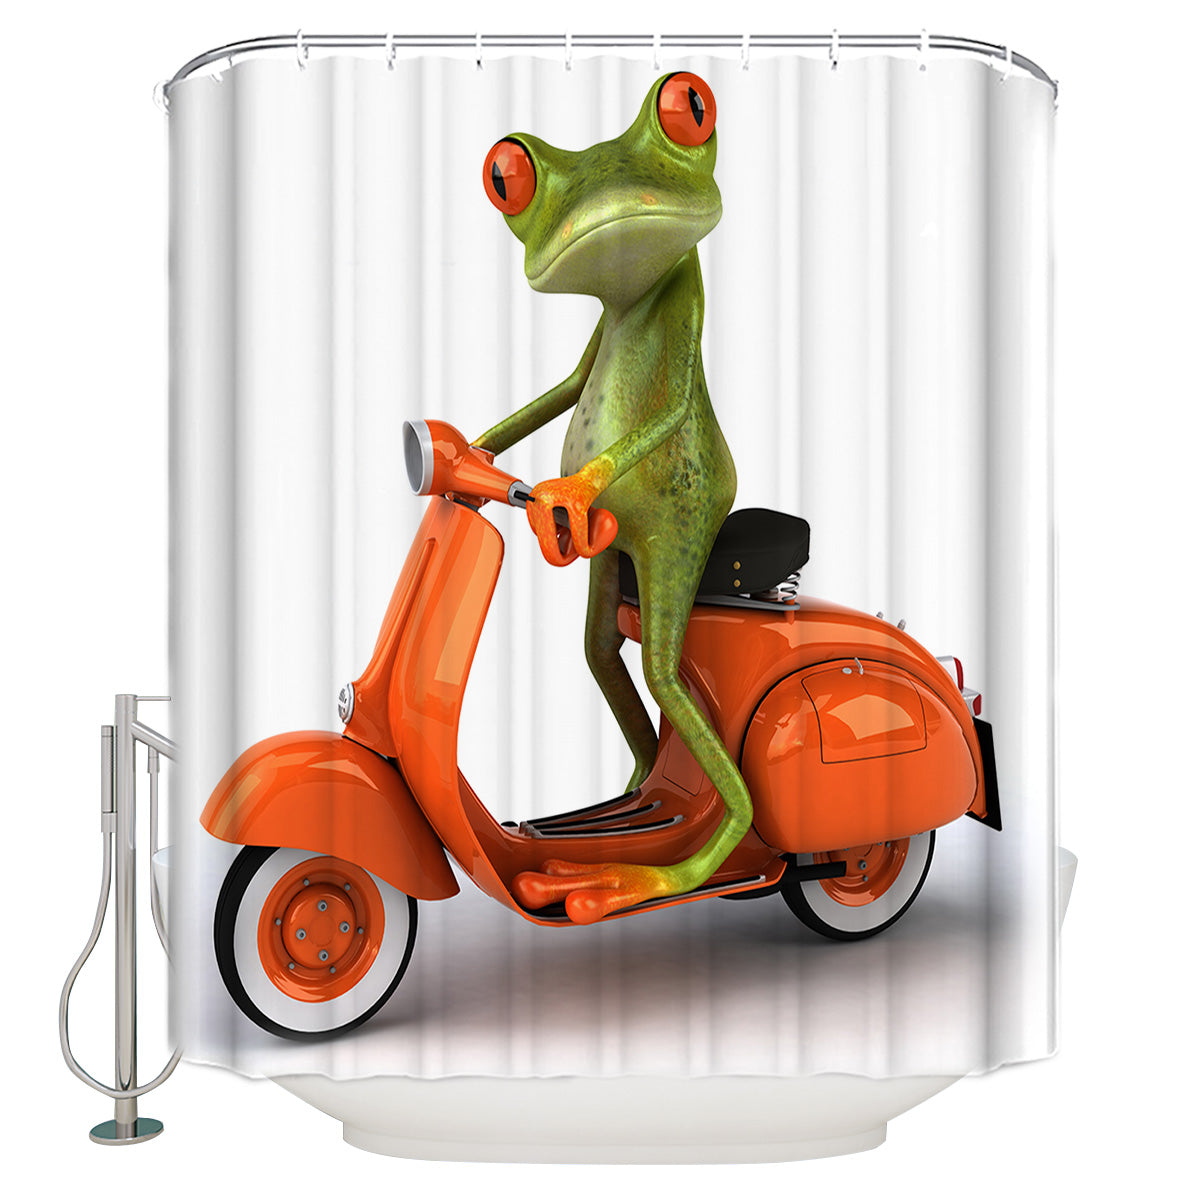 Funny Animal Cartoon Frog on Scooter Shower Curtain